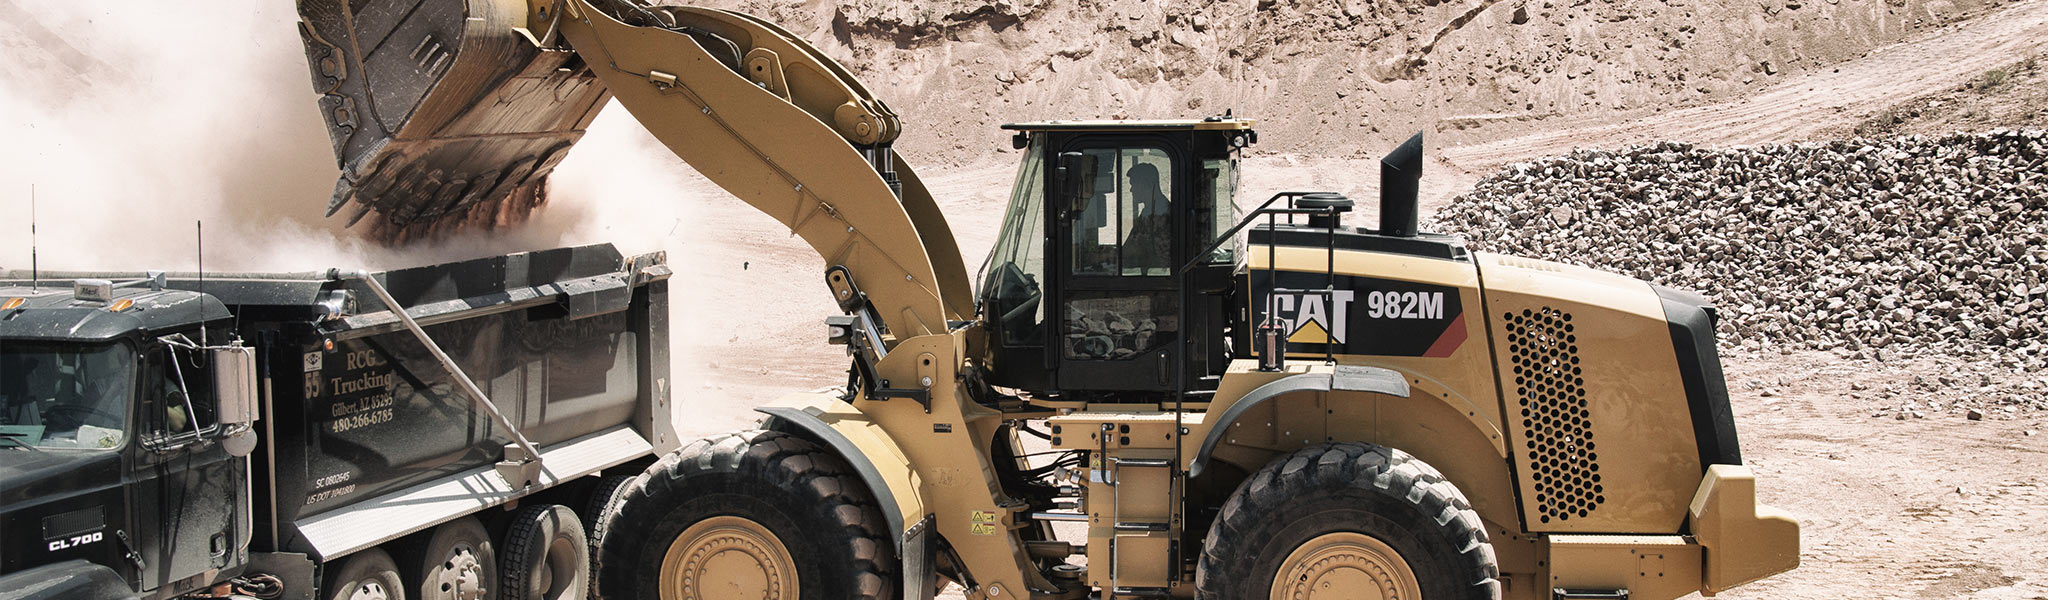 The 982M is a new model in the Cat® M Series medium wheel loader line,